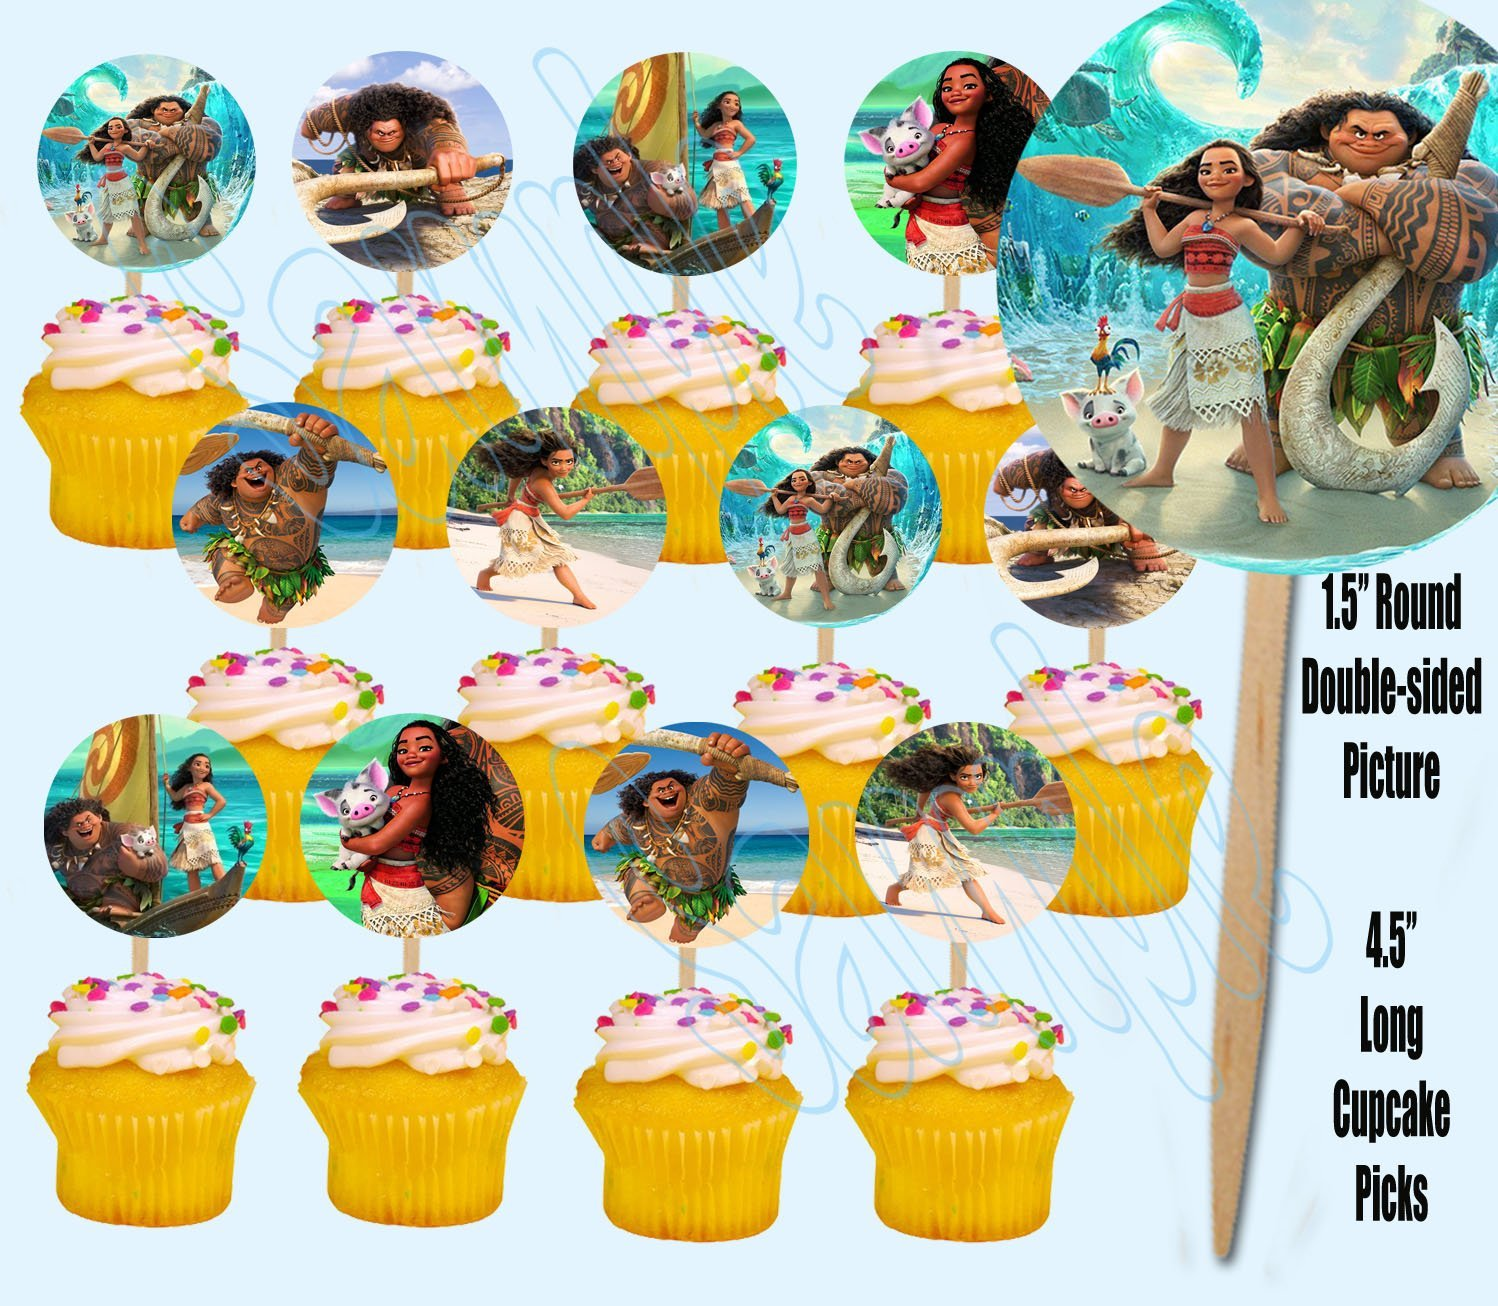 Moana Maui Hawaiian Disney Movie Double-Sided Cupcake Picks Cake Toppers -12 pcs